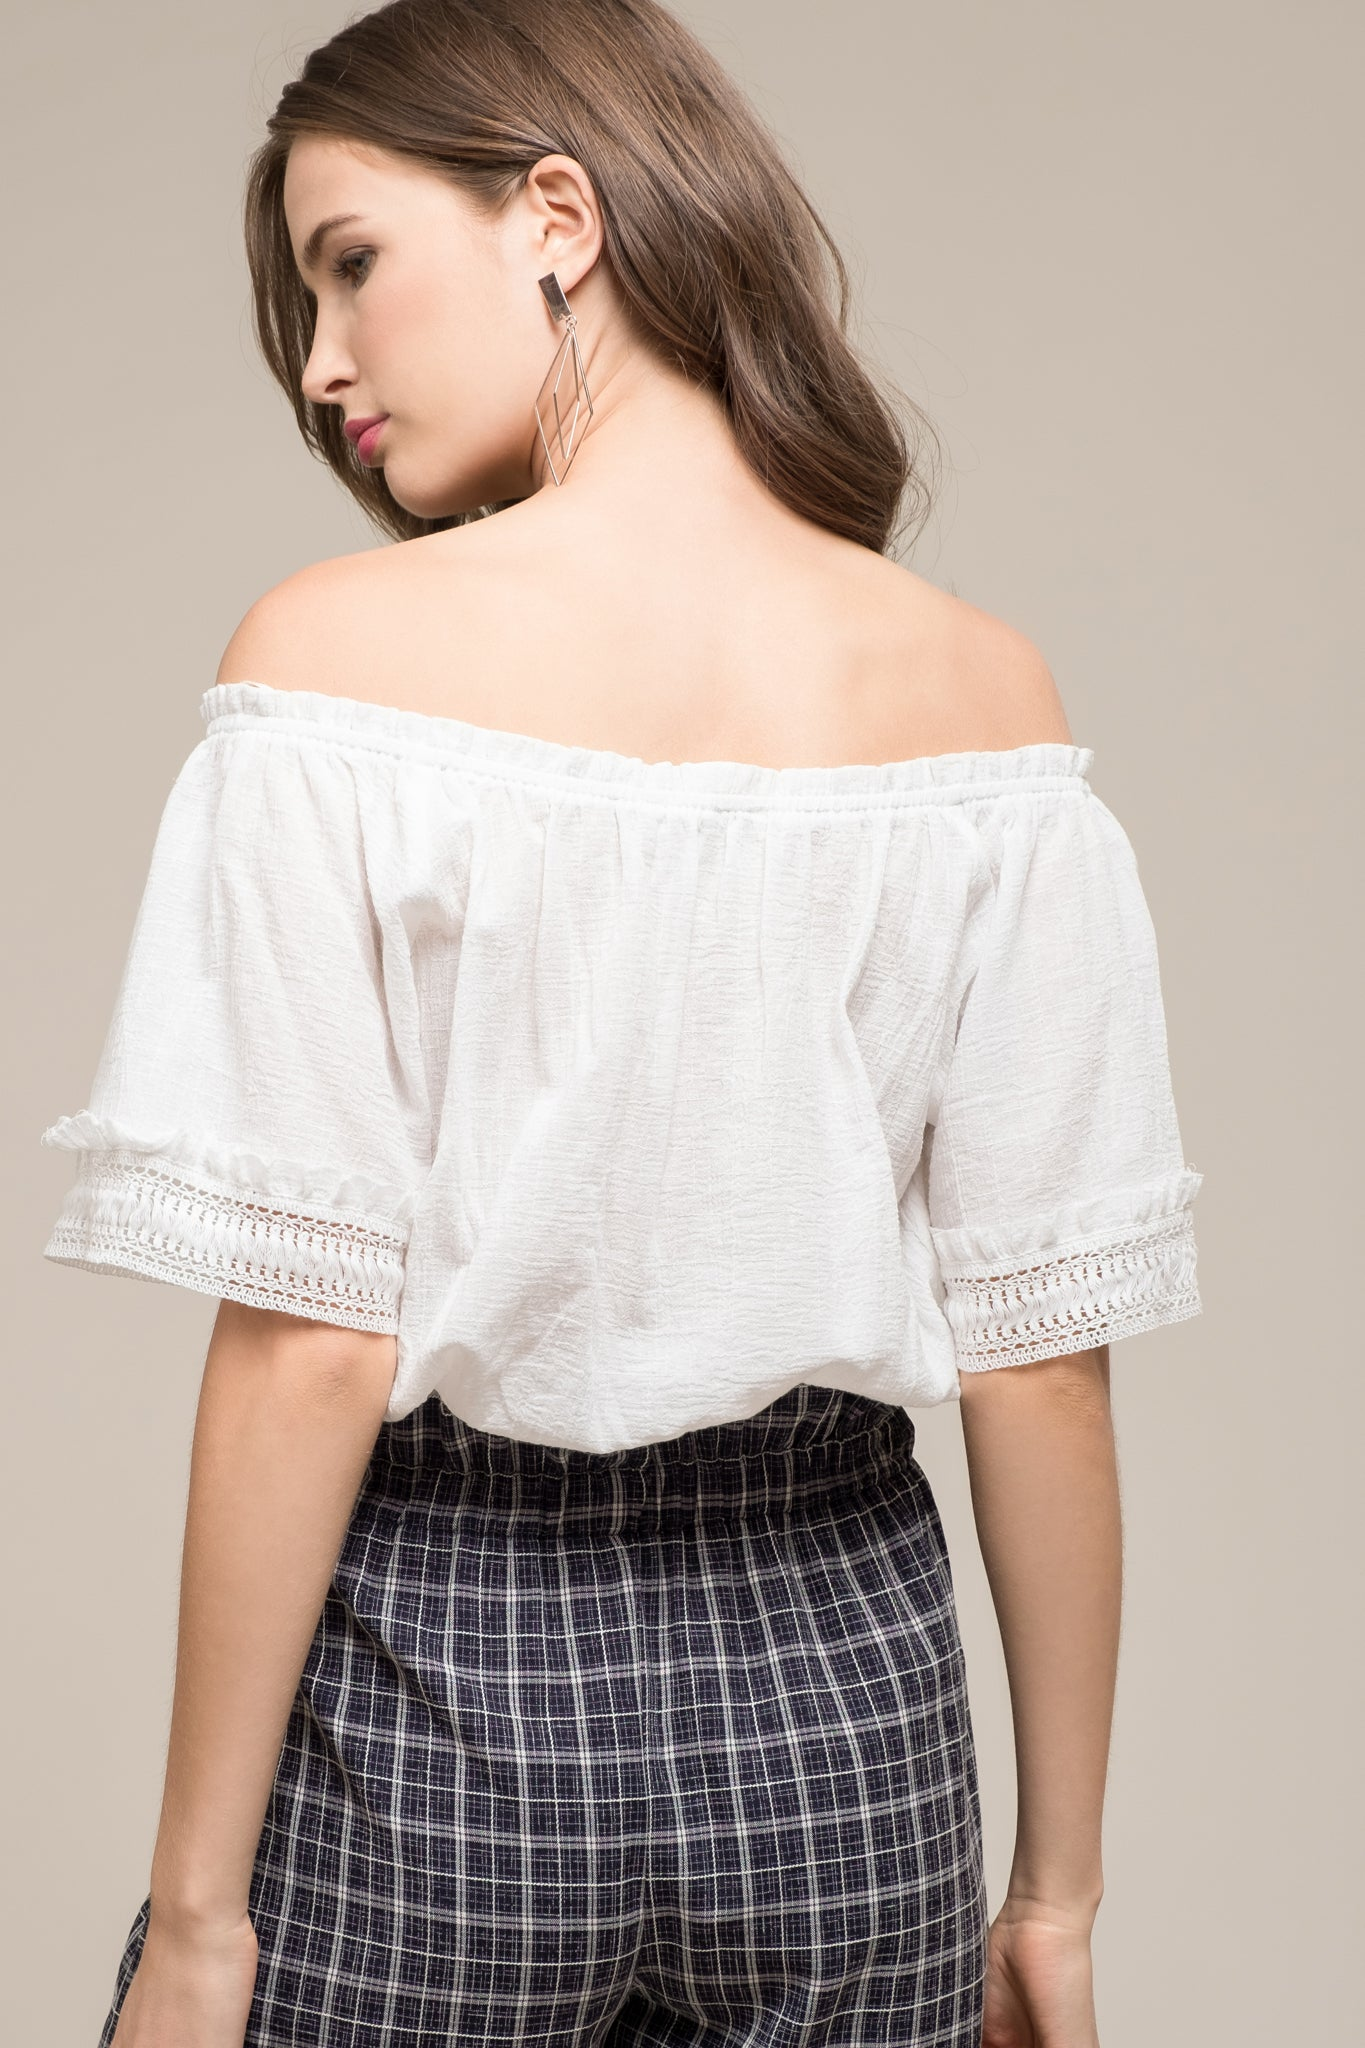 SHORT SLEEVE TOP WITH CONTRAST